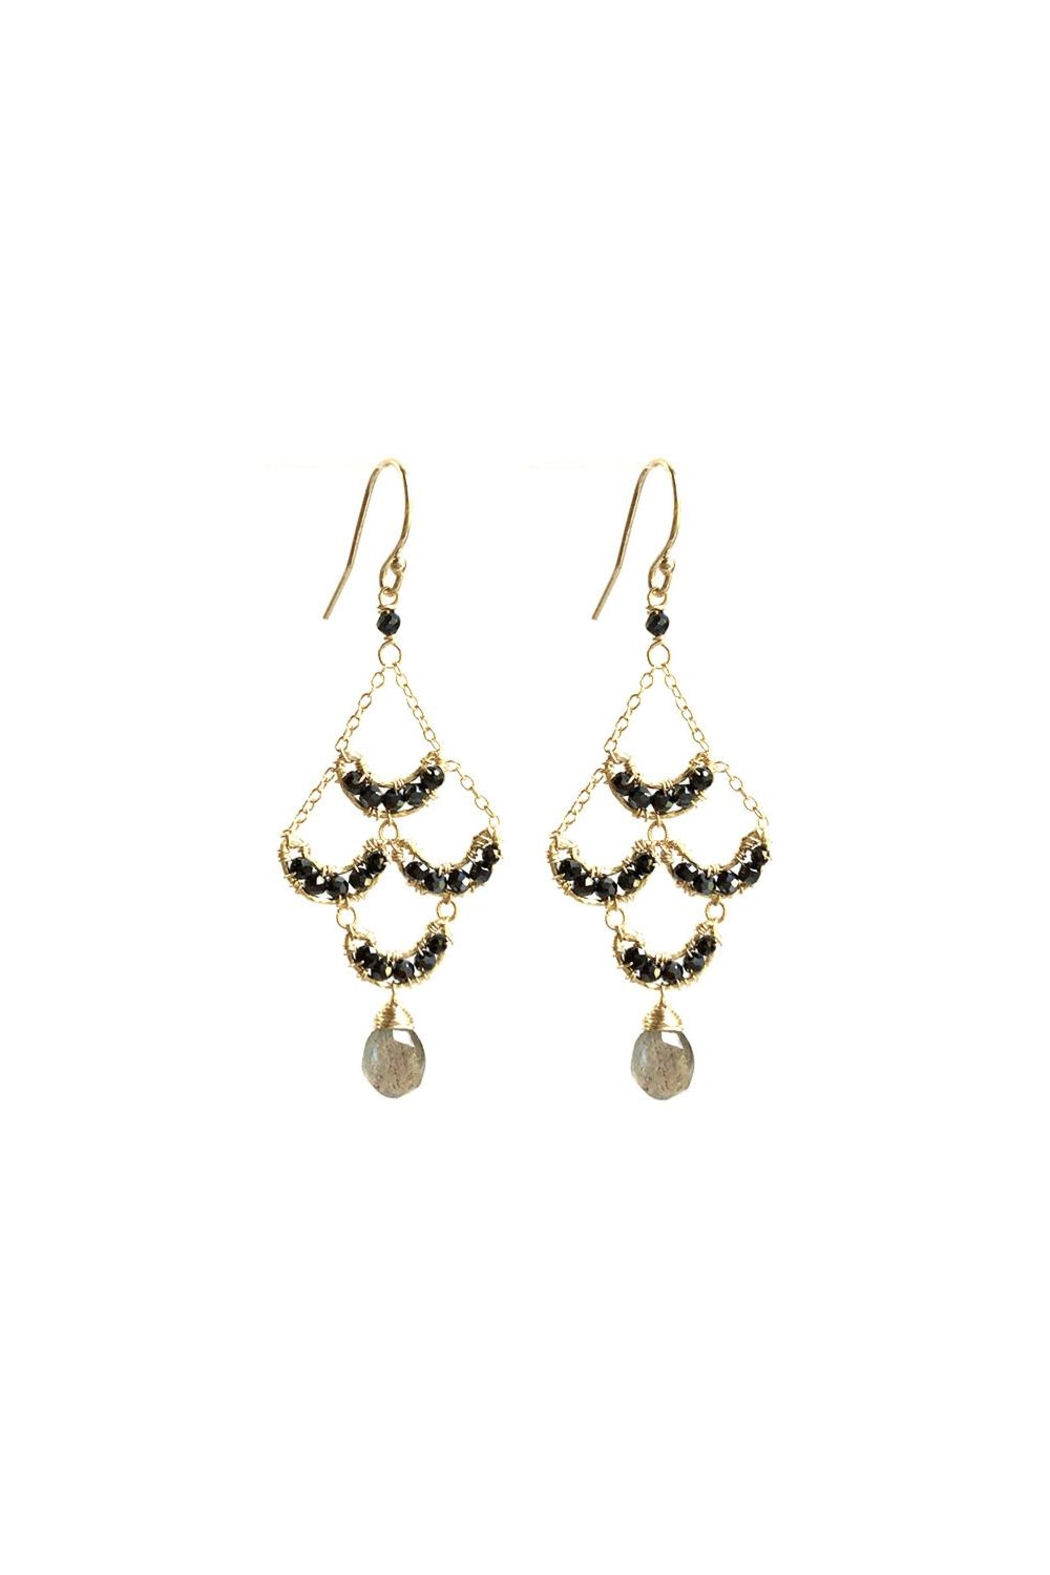 Michelle Pressler Black Chandelier Earrings - Main Image